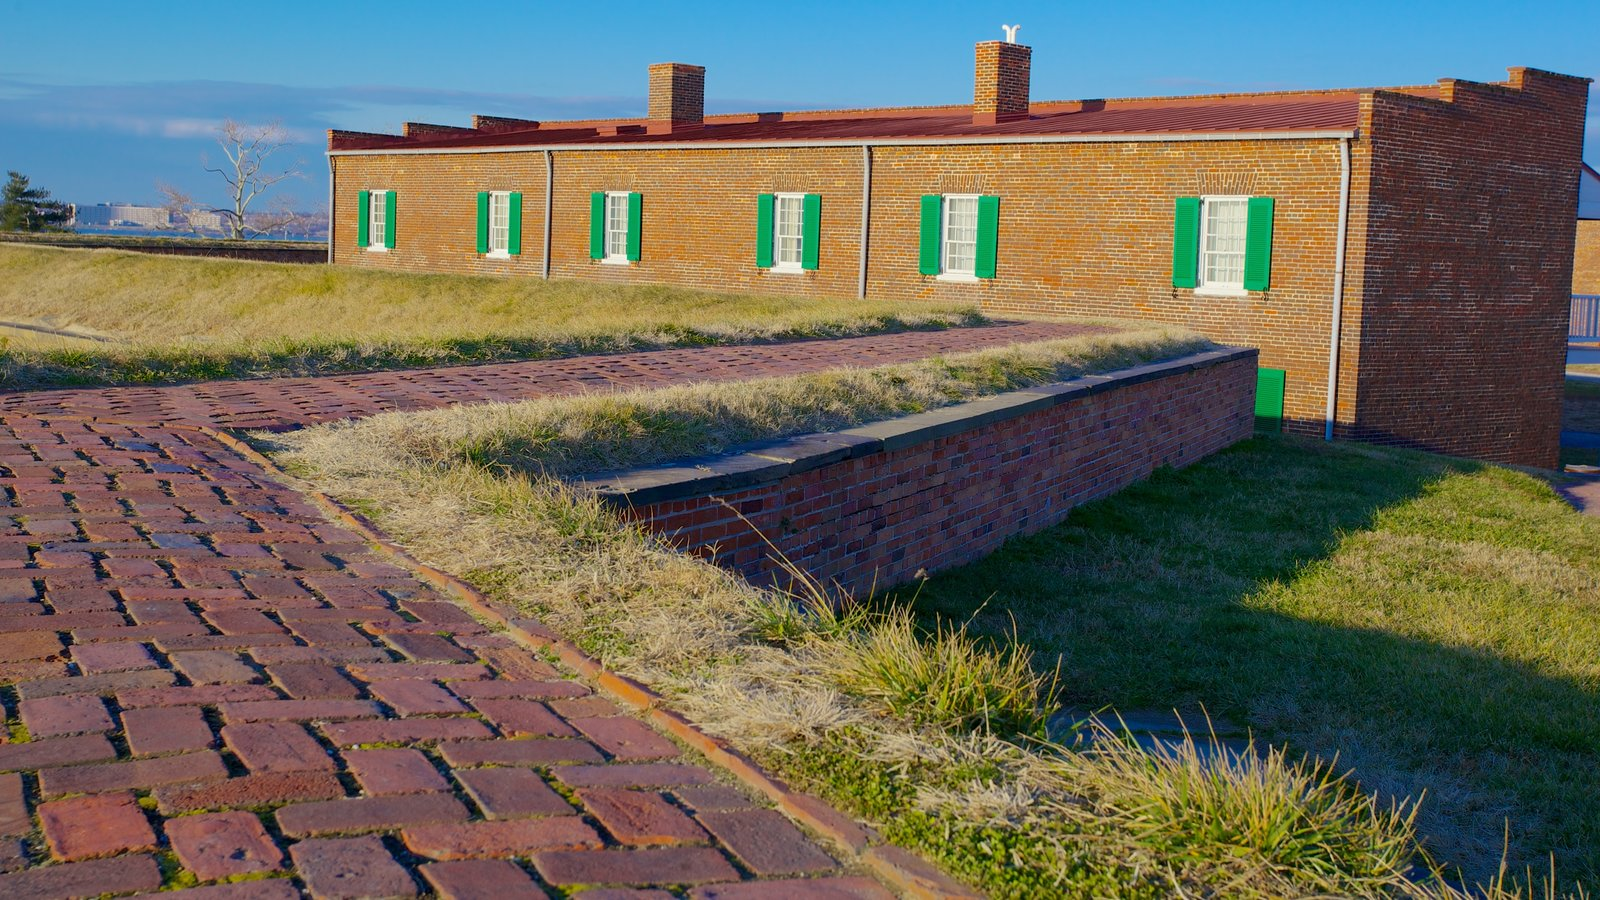 Fort McHenry showing a monument